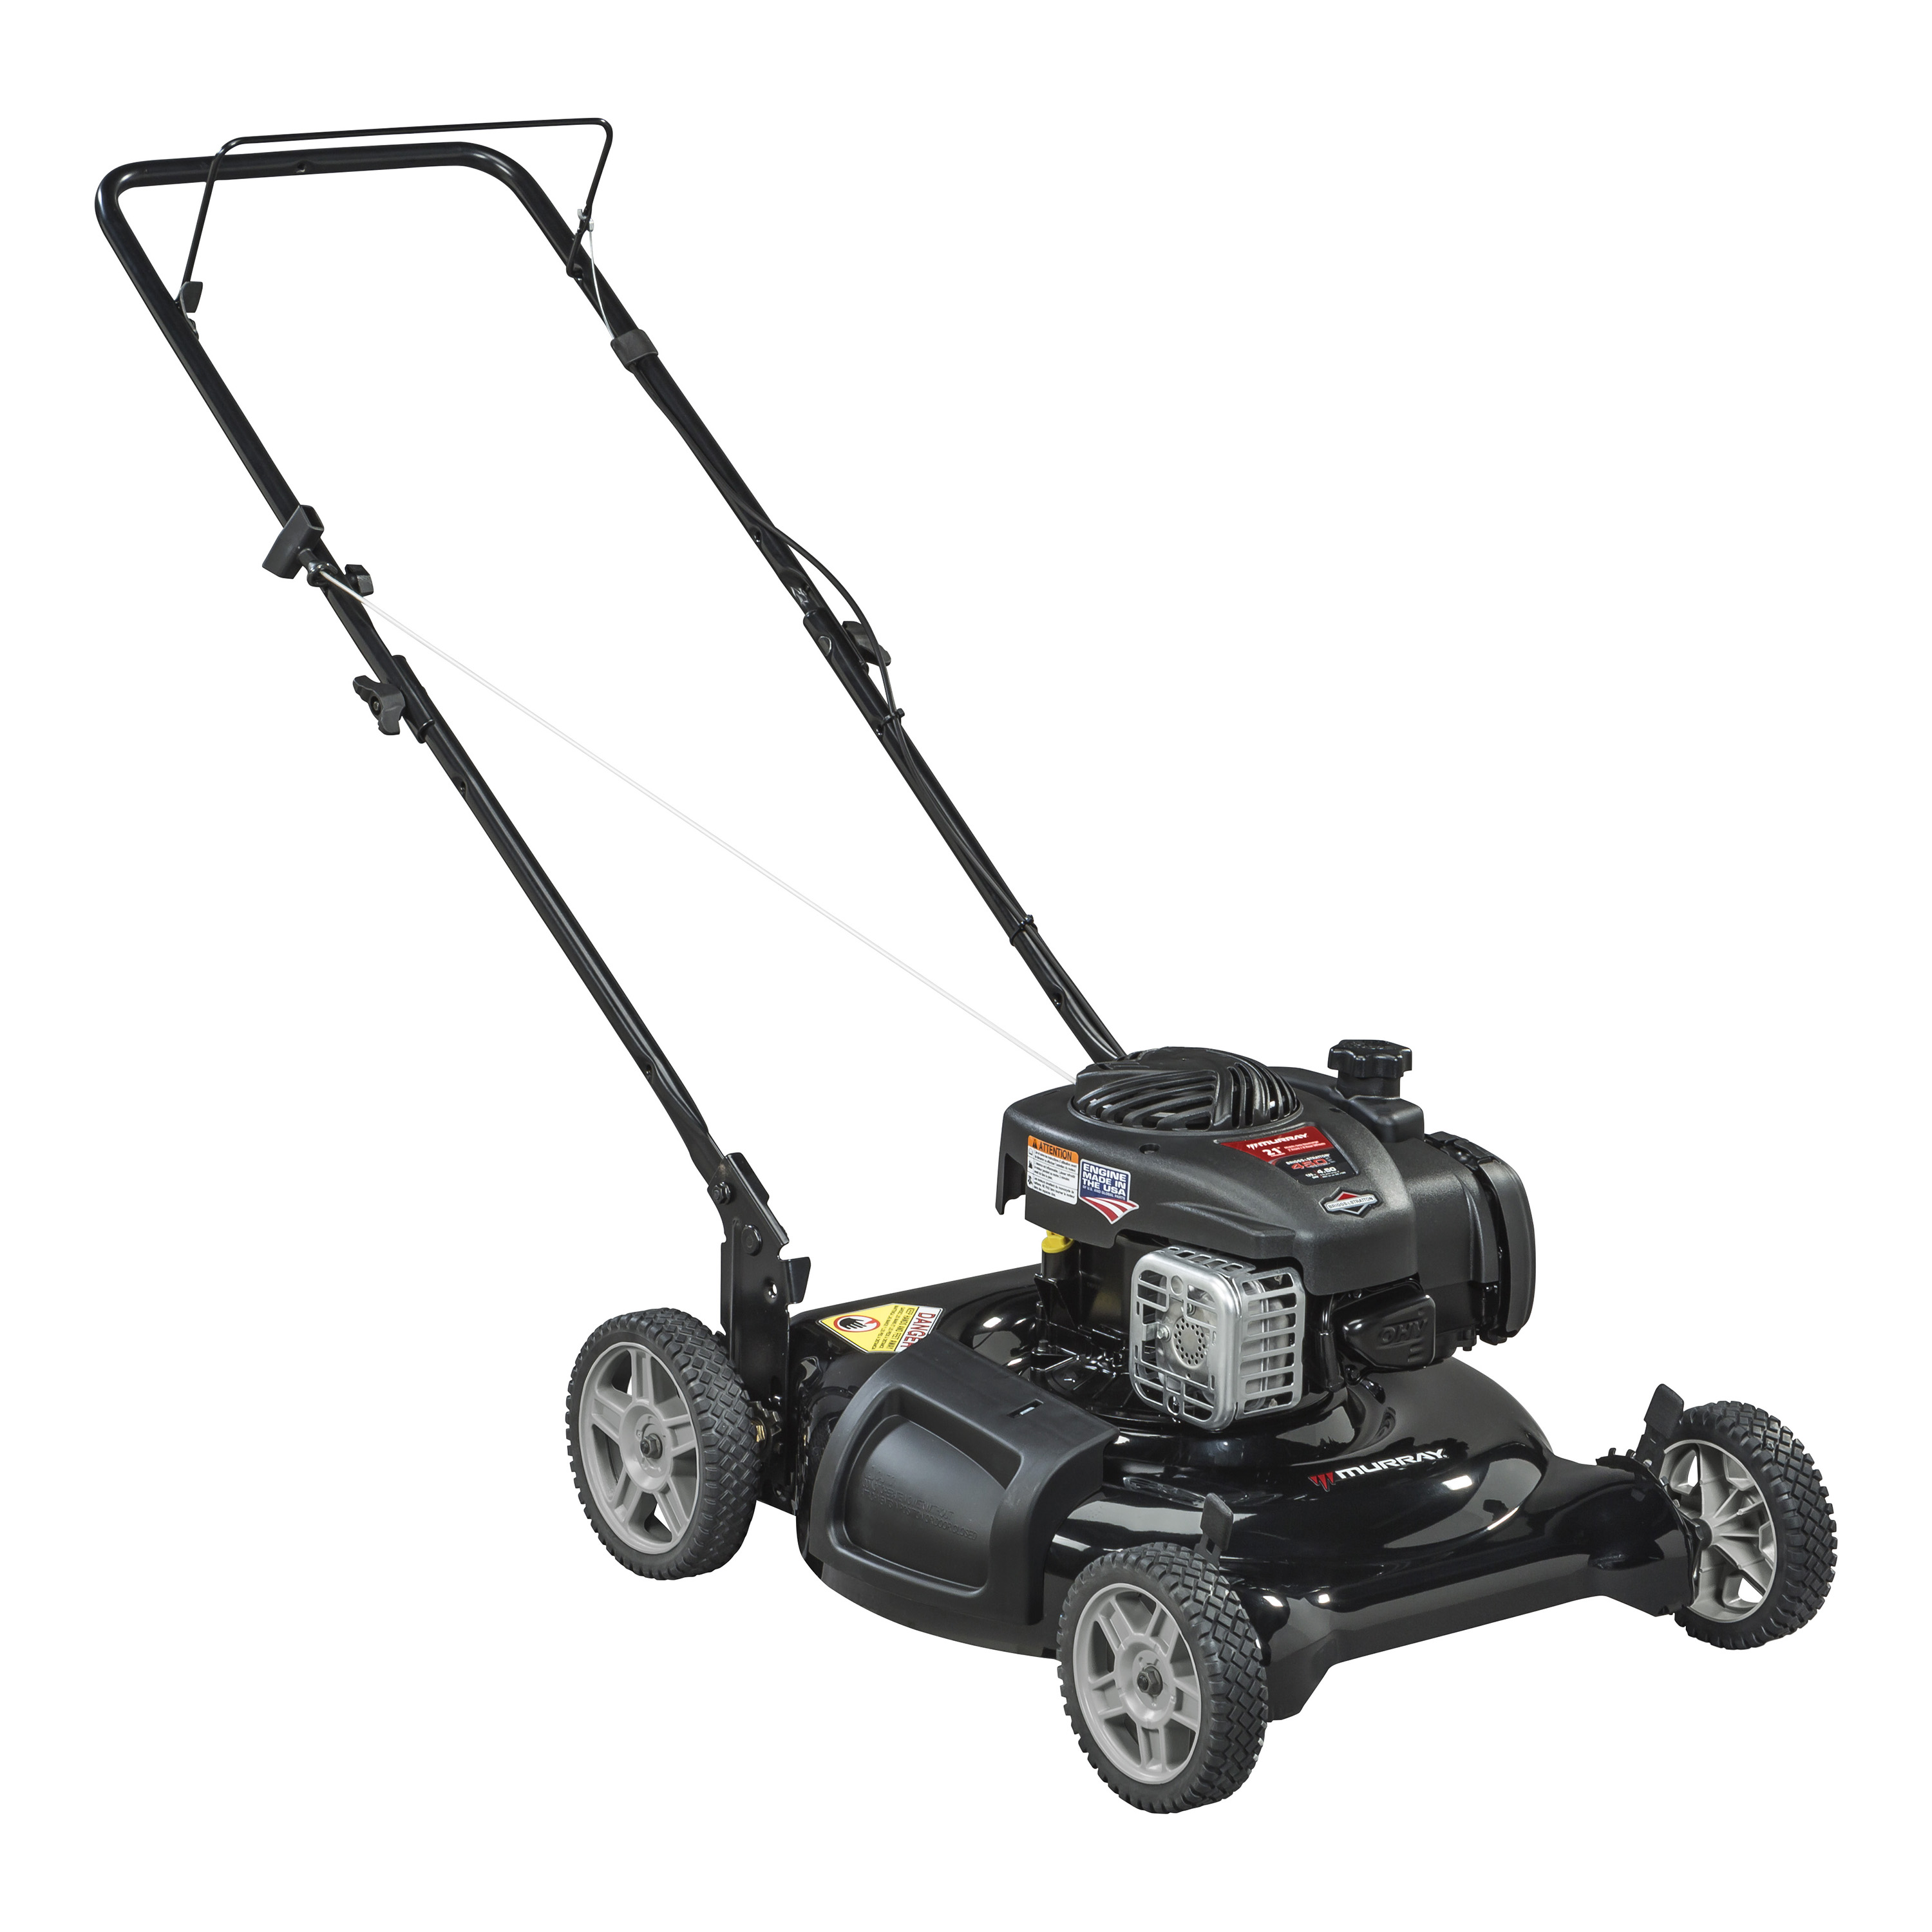 Murray 21 in. Briggs & Stratton 125cc 2-n-1 Push Lawnmower